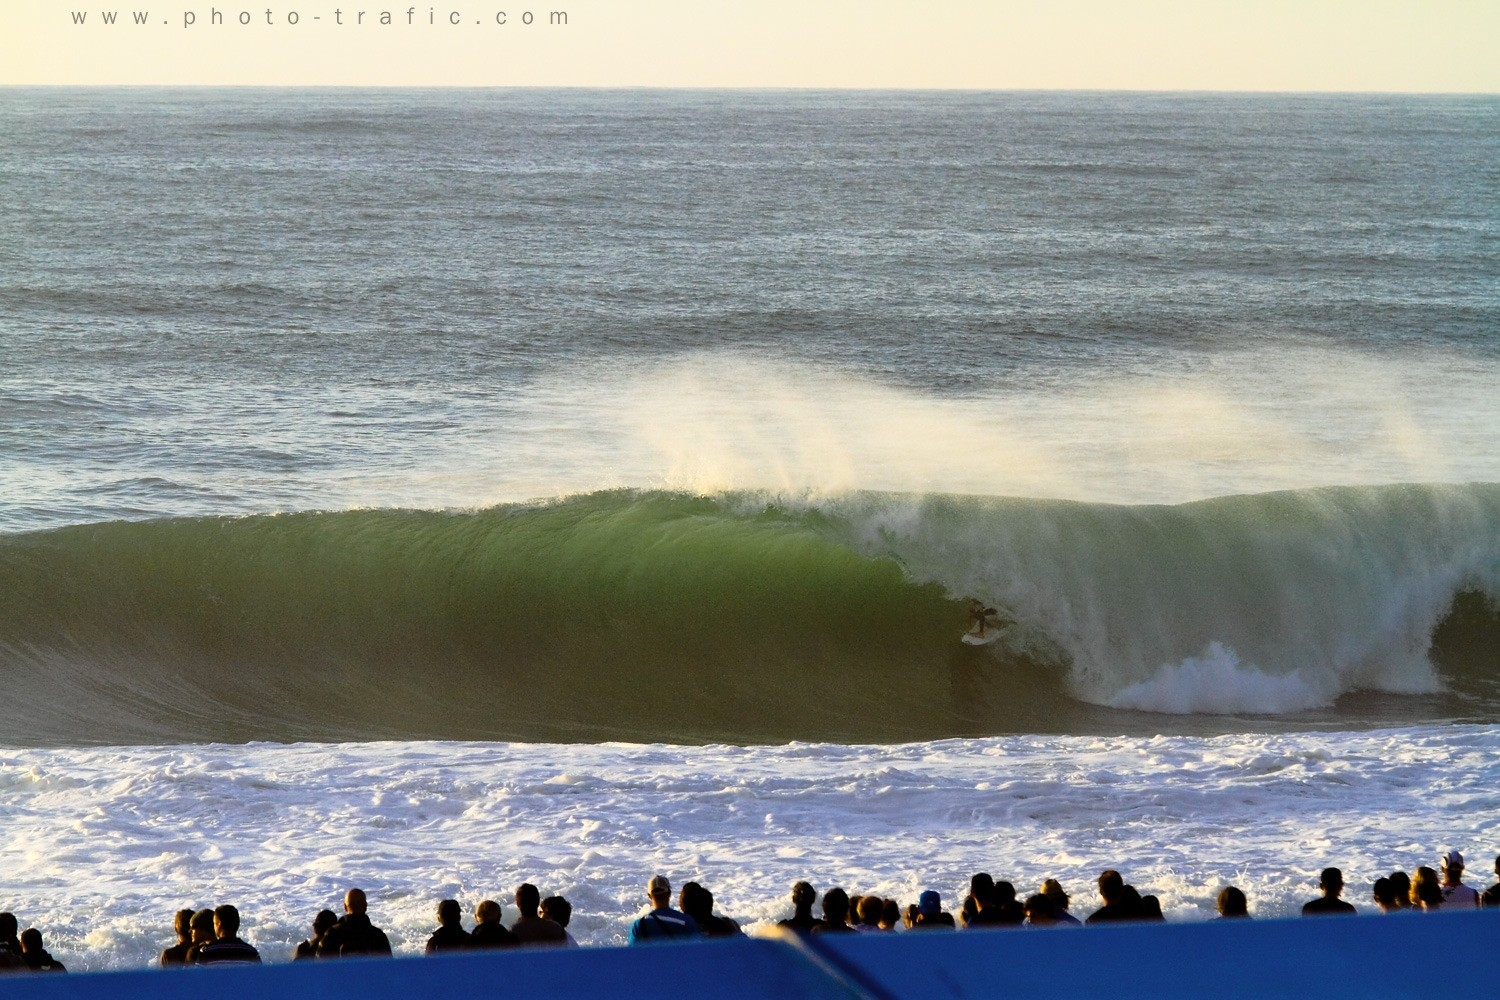 Baptiste Haugomat's photo of Hossegor (La Graviere)